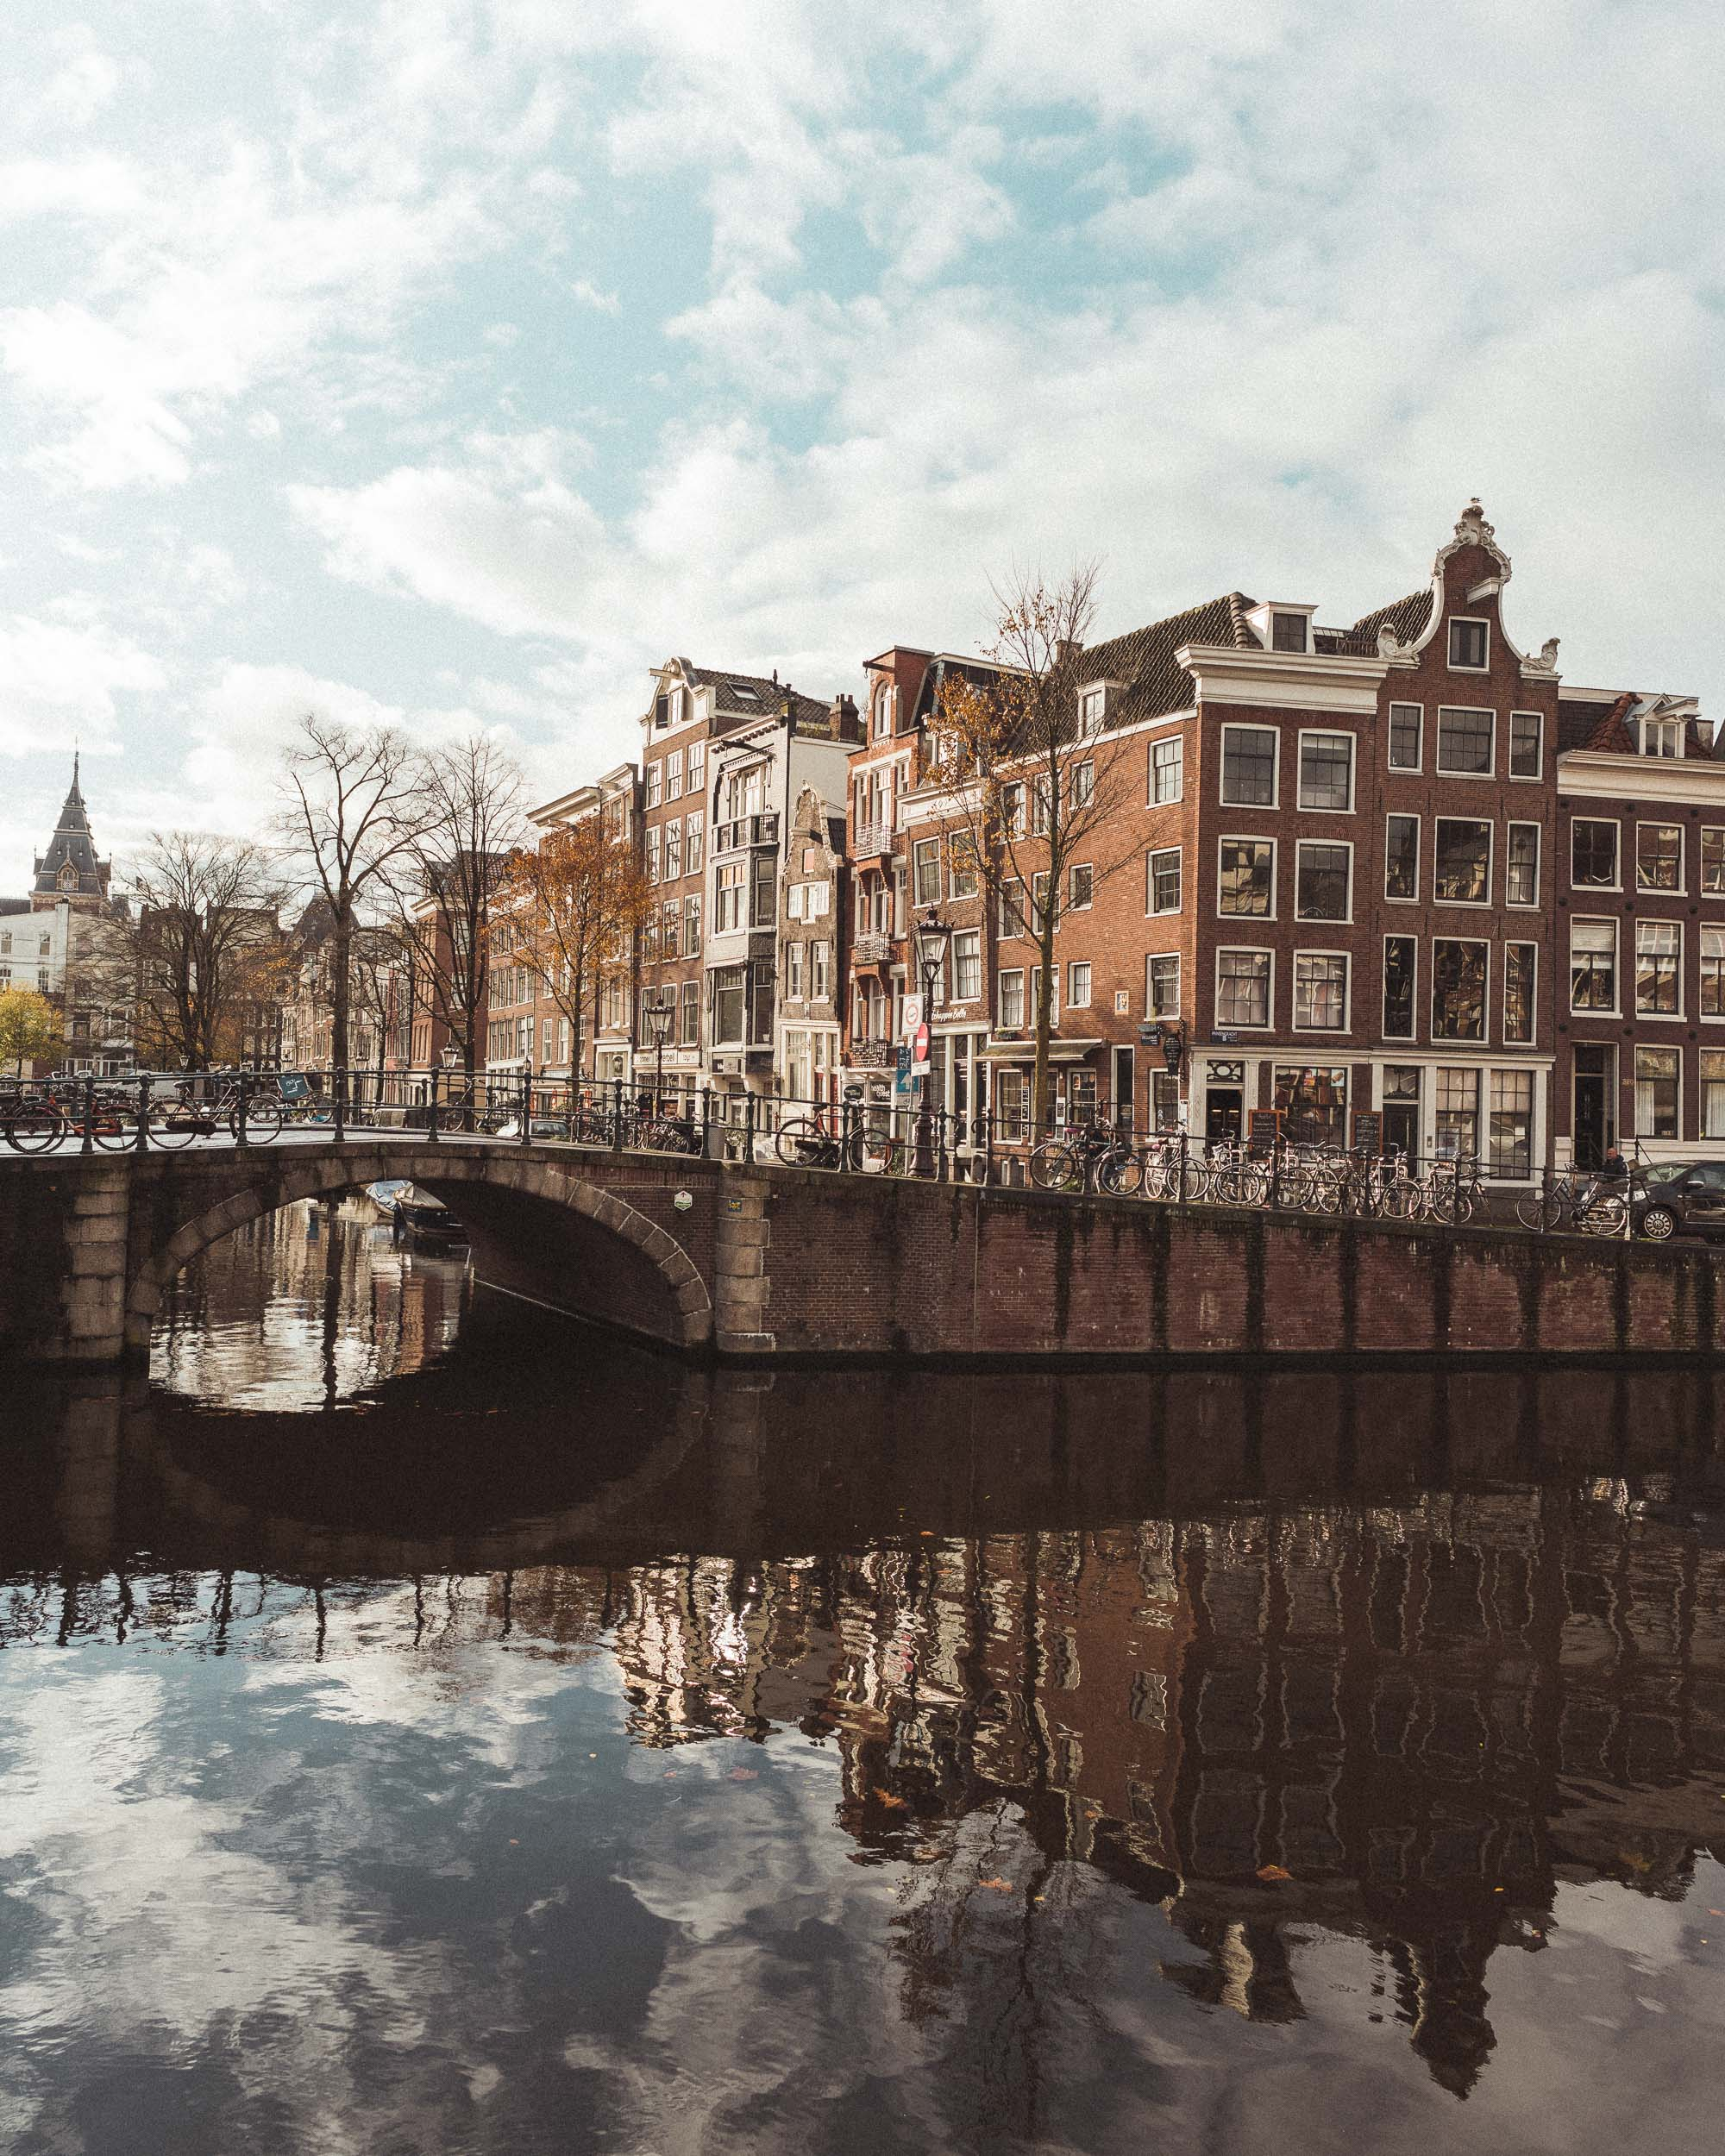 Photogenic dutch canal houses near the rijksmuseum in Amsterdam, The Netherlands